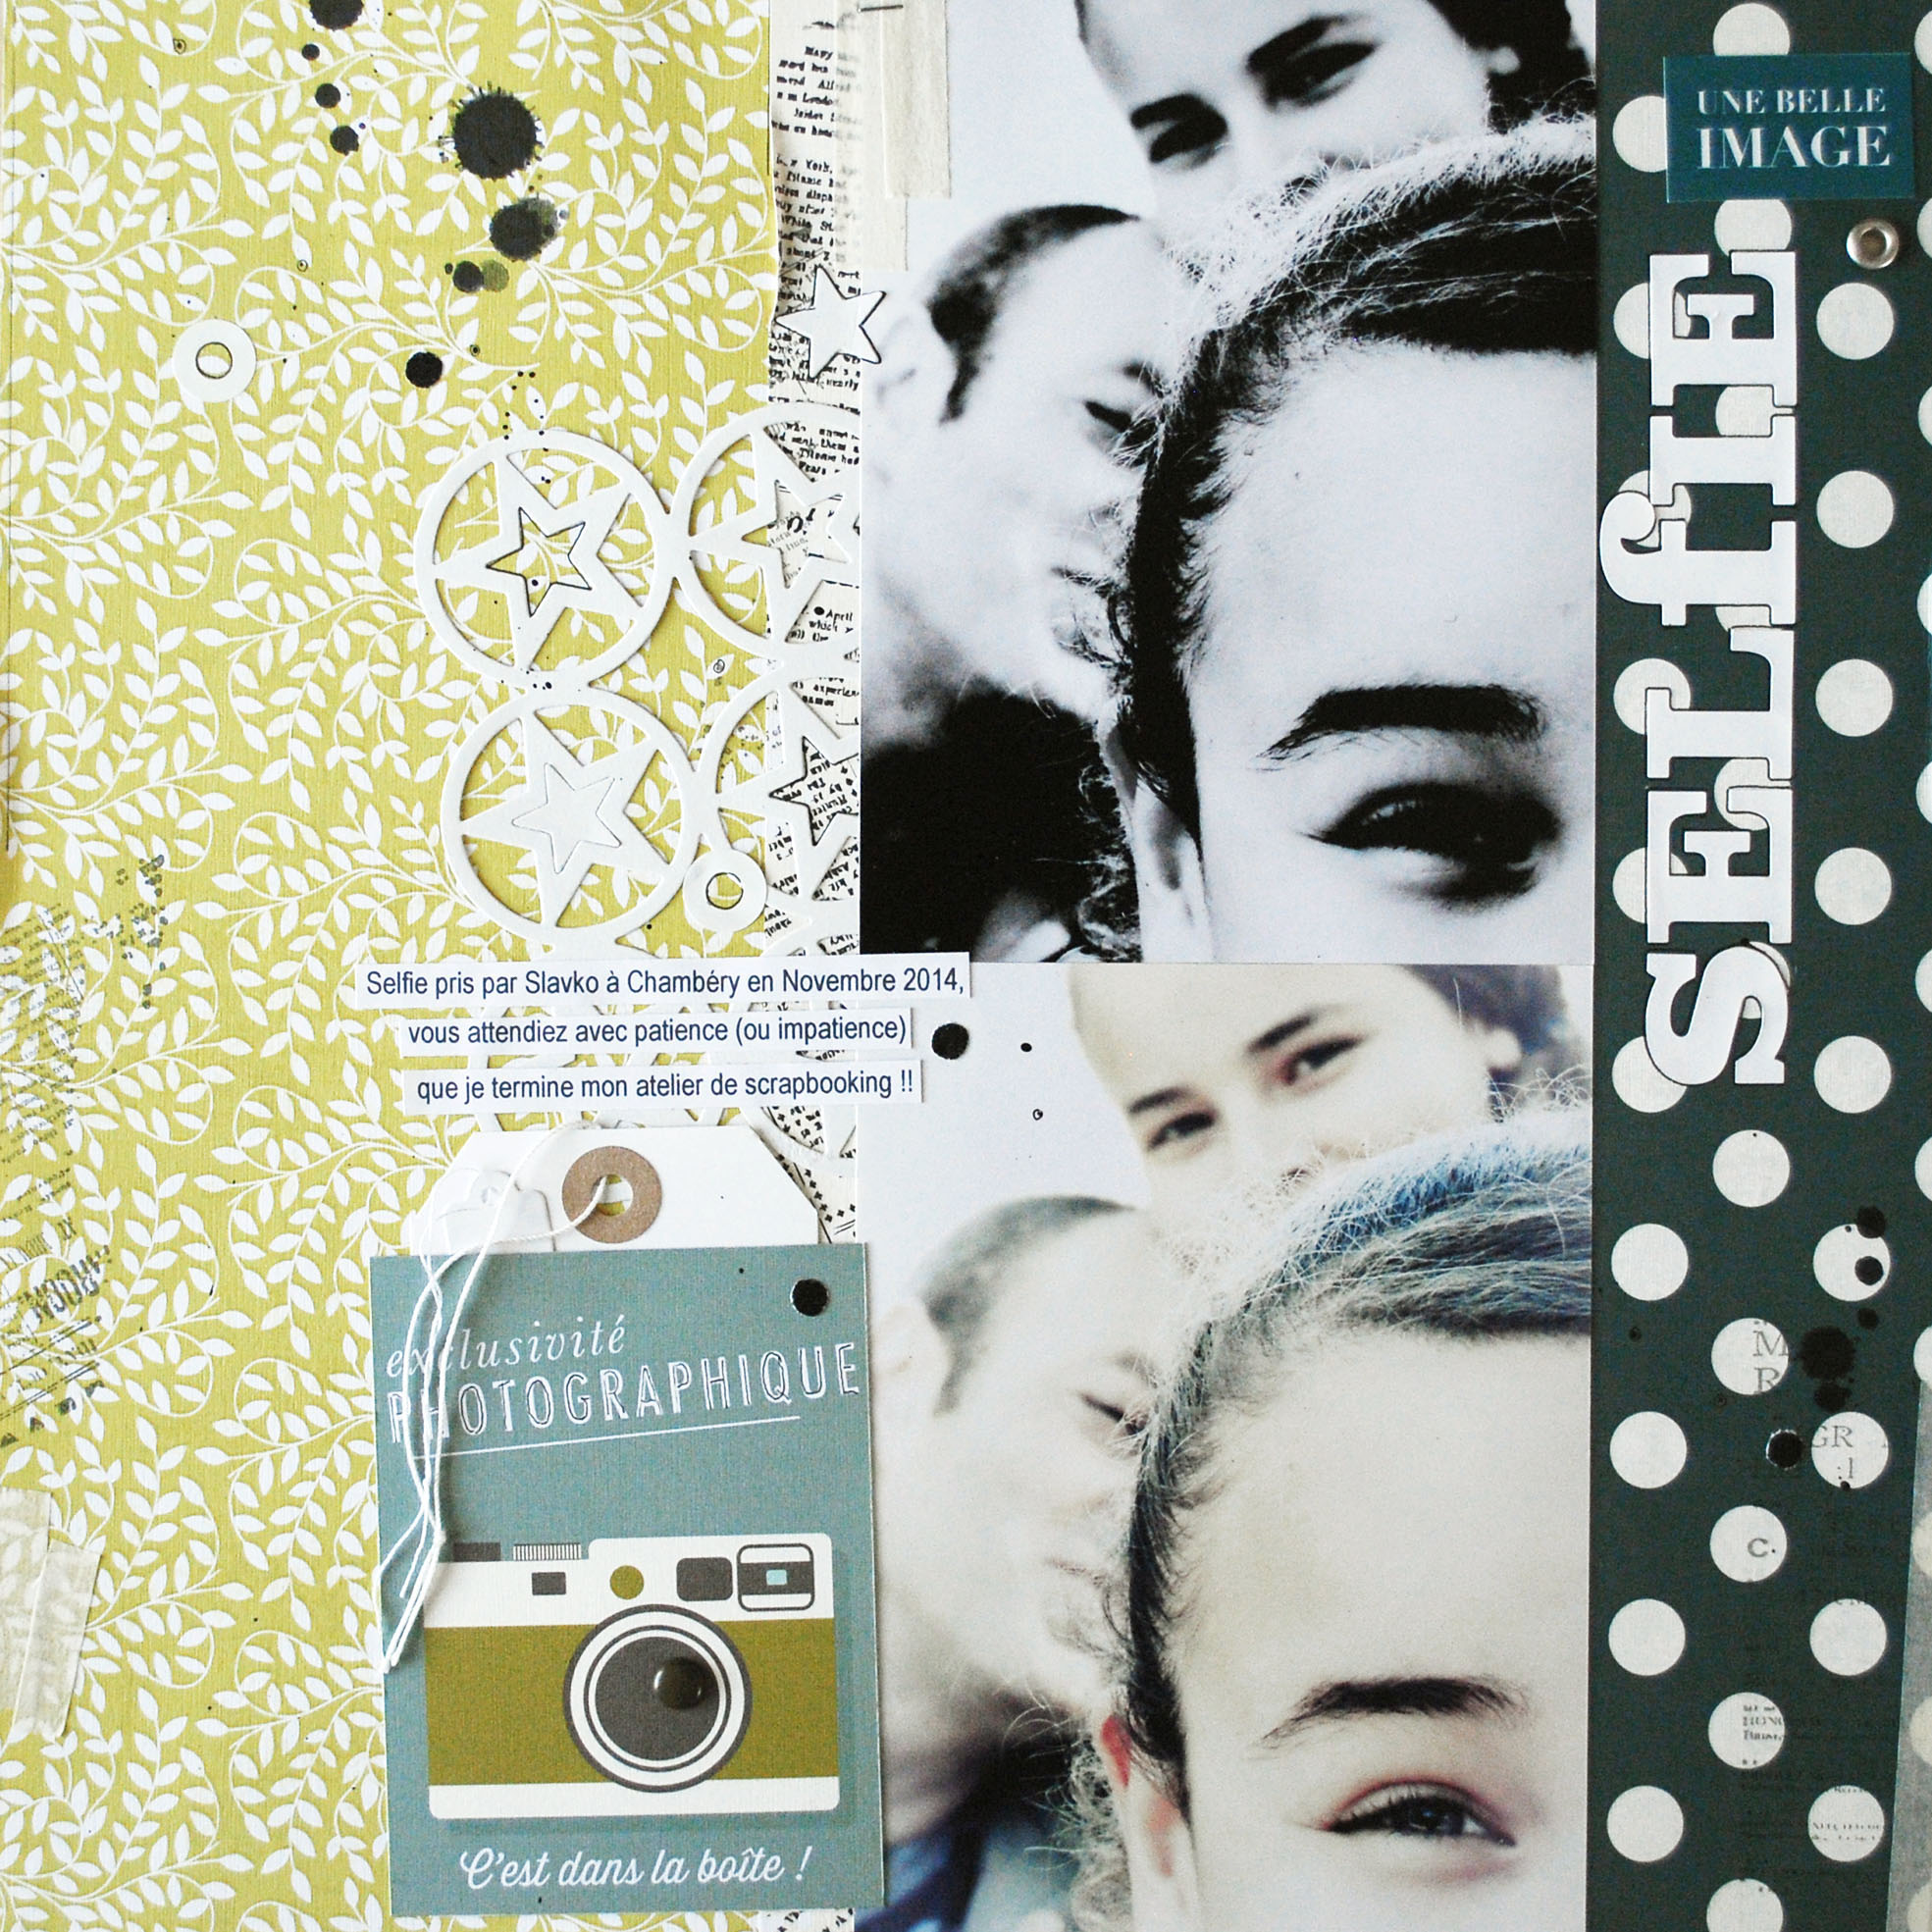 kesi-art-semaine-thematique-selfie-prisca-scrapbooking